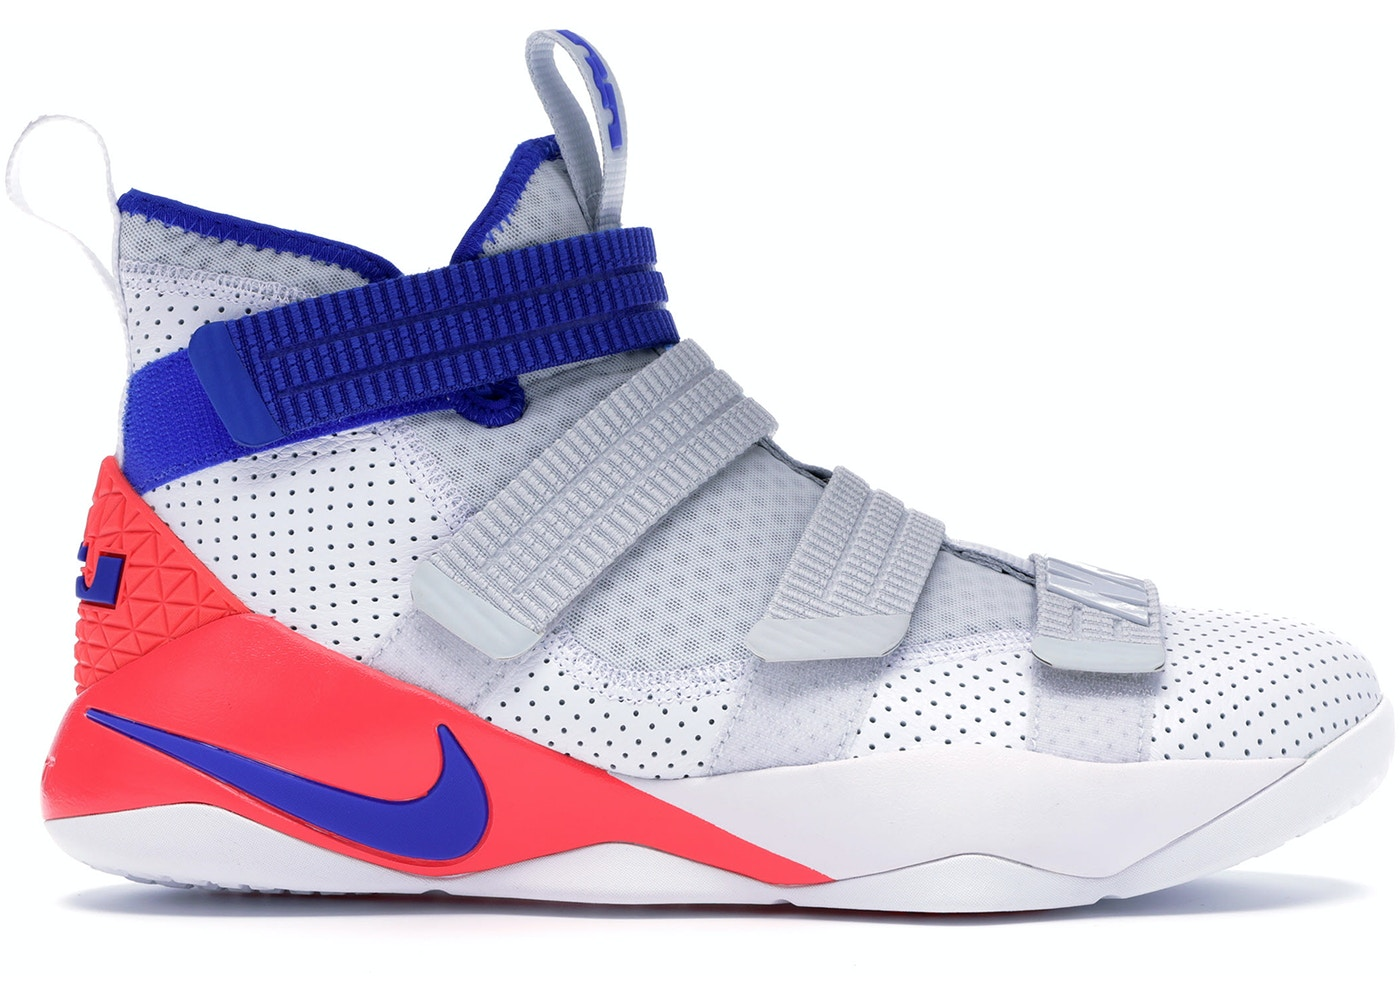 hot sales 1ac6a 0cfb9 Nike LeBron Other Shoes - Volatility